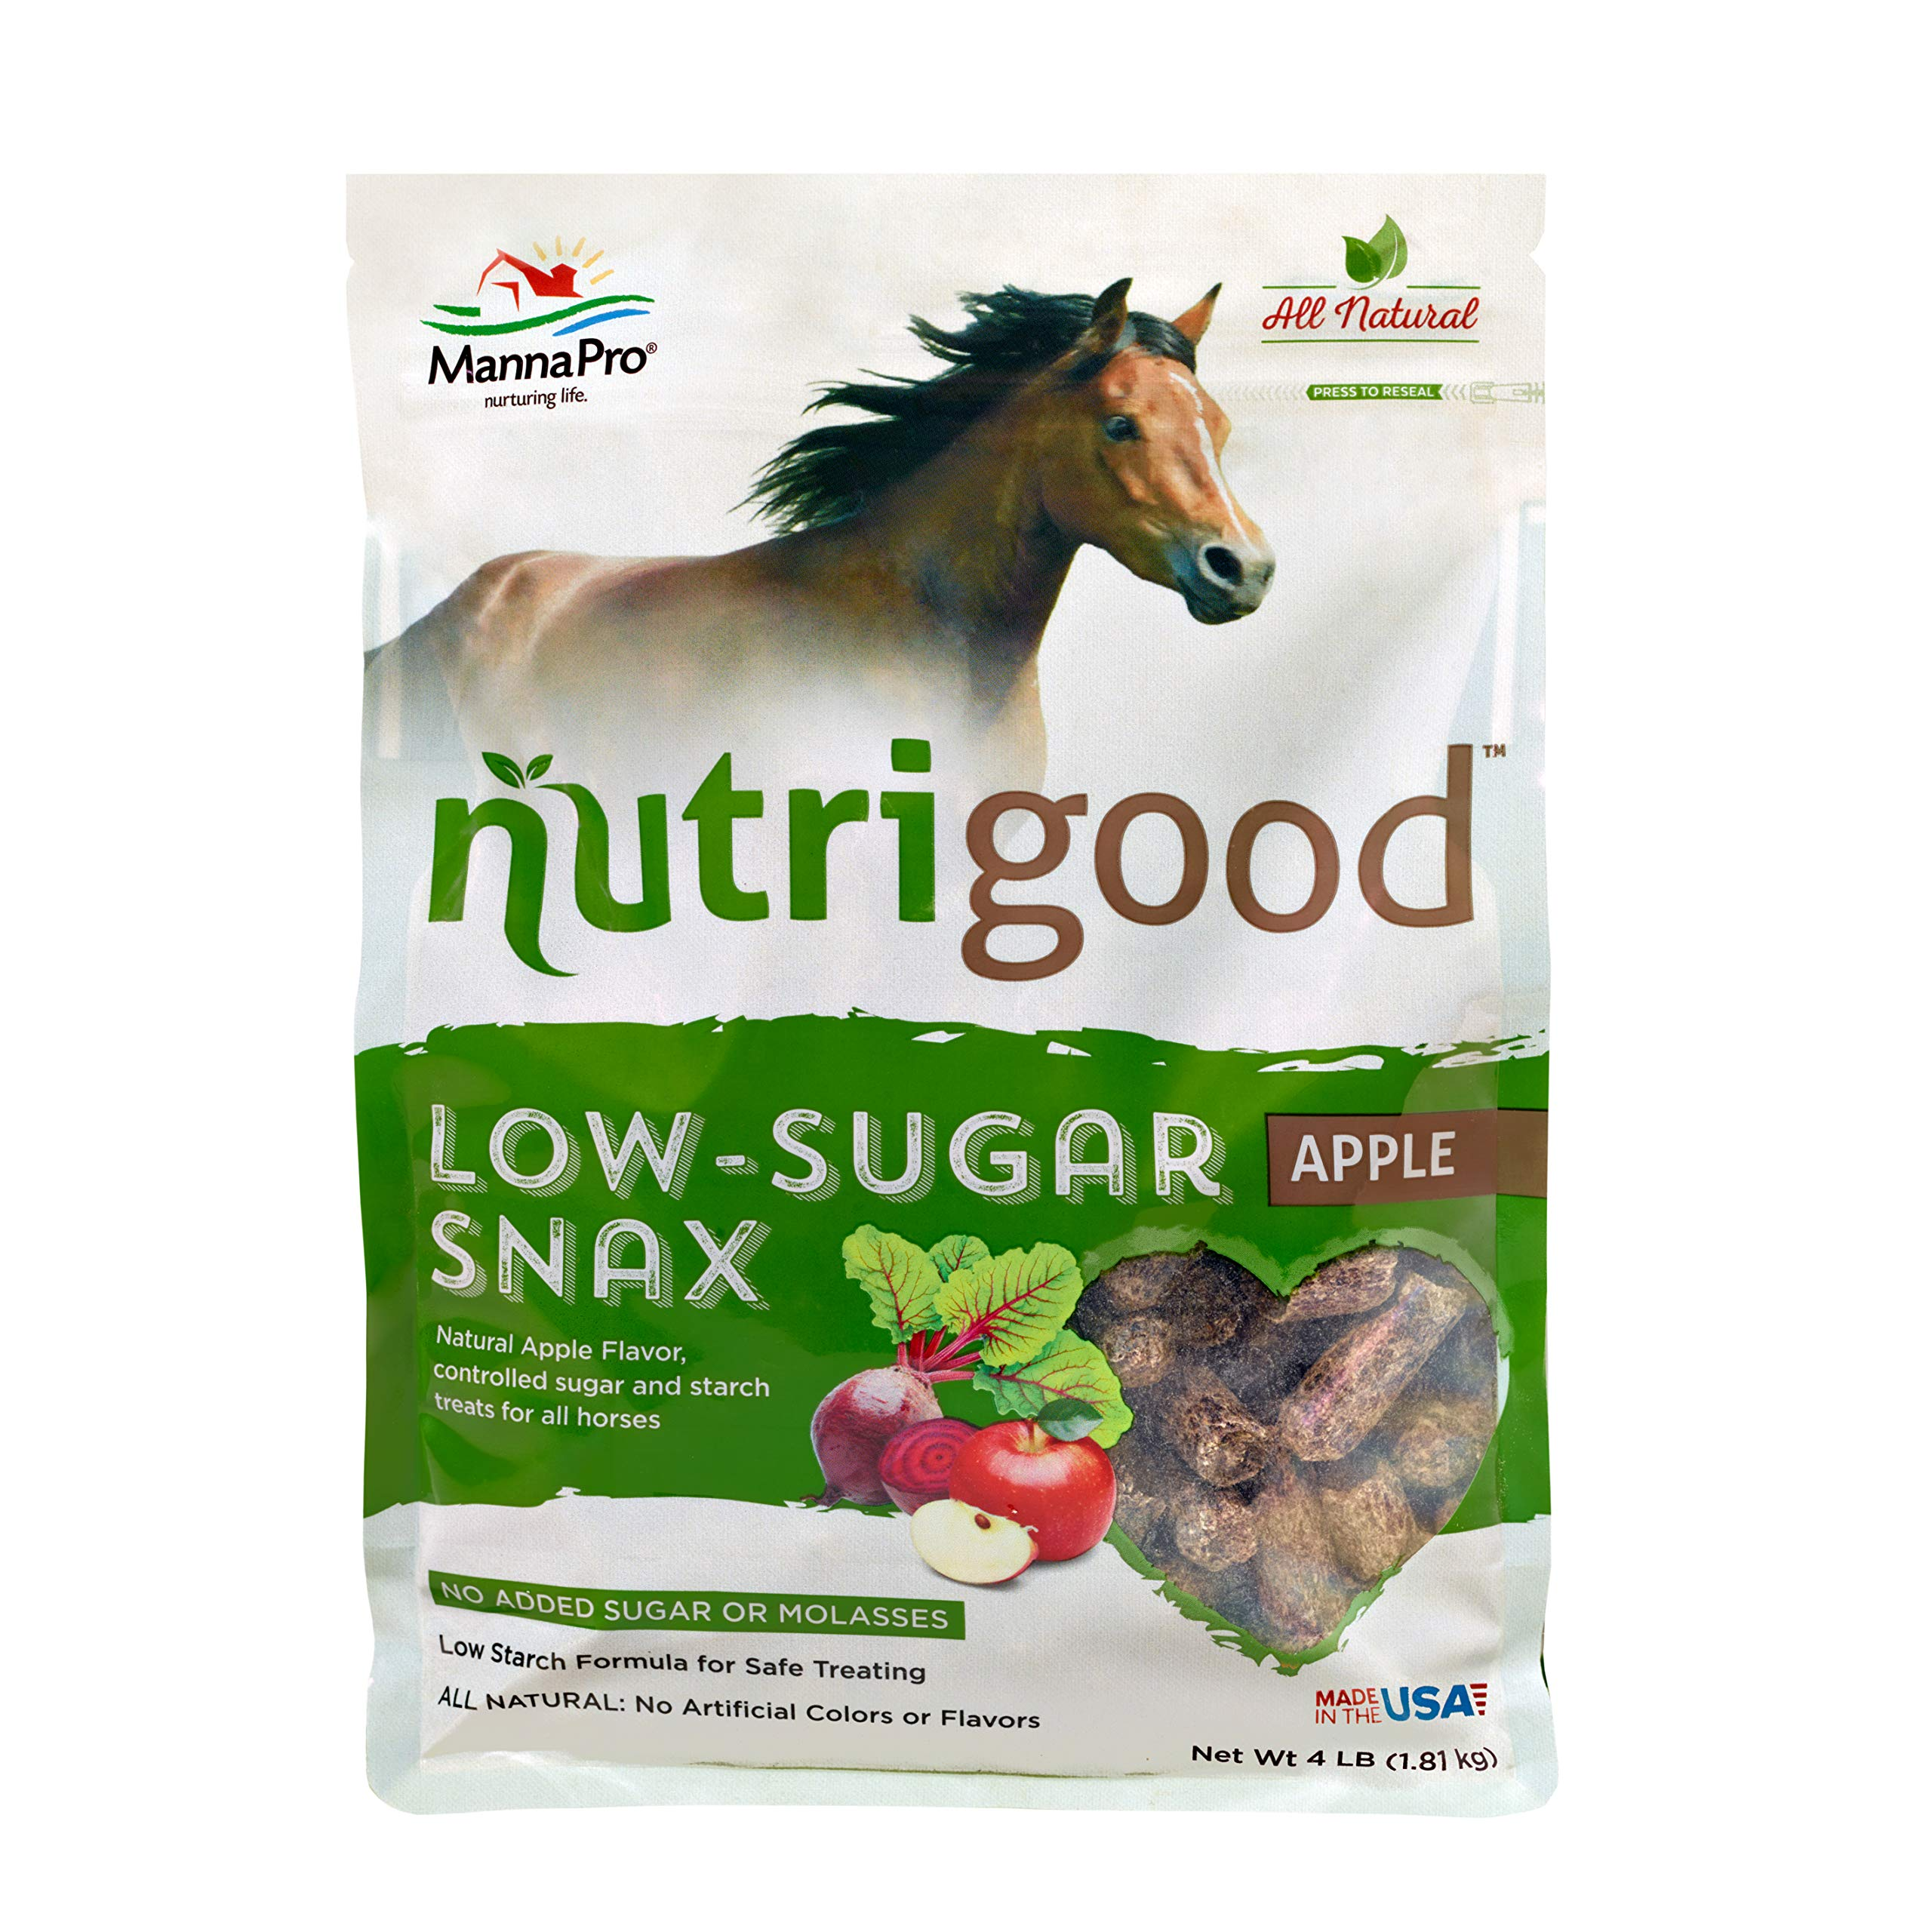 NutriGood Low-Sugar Snax for Horses, Apple by Manna Pro